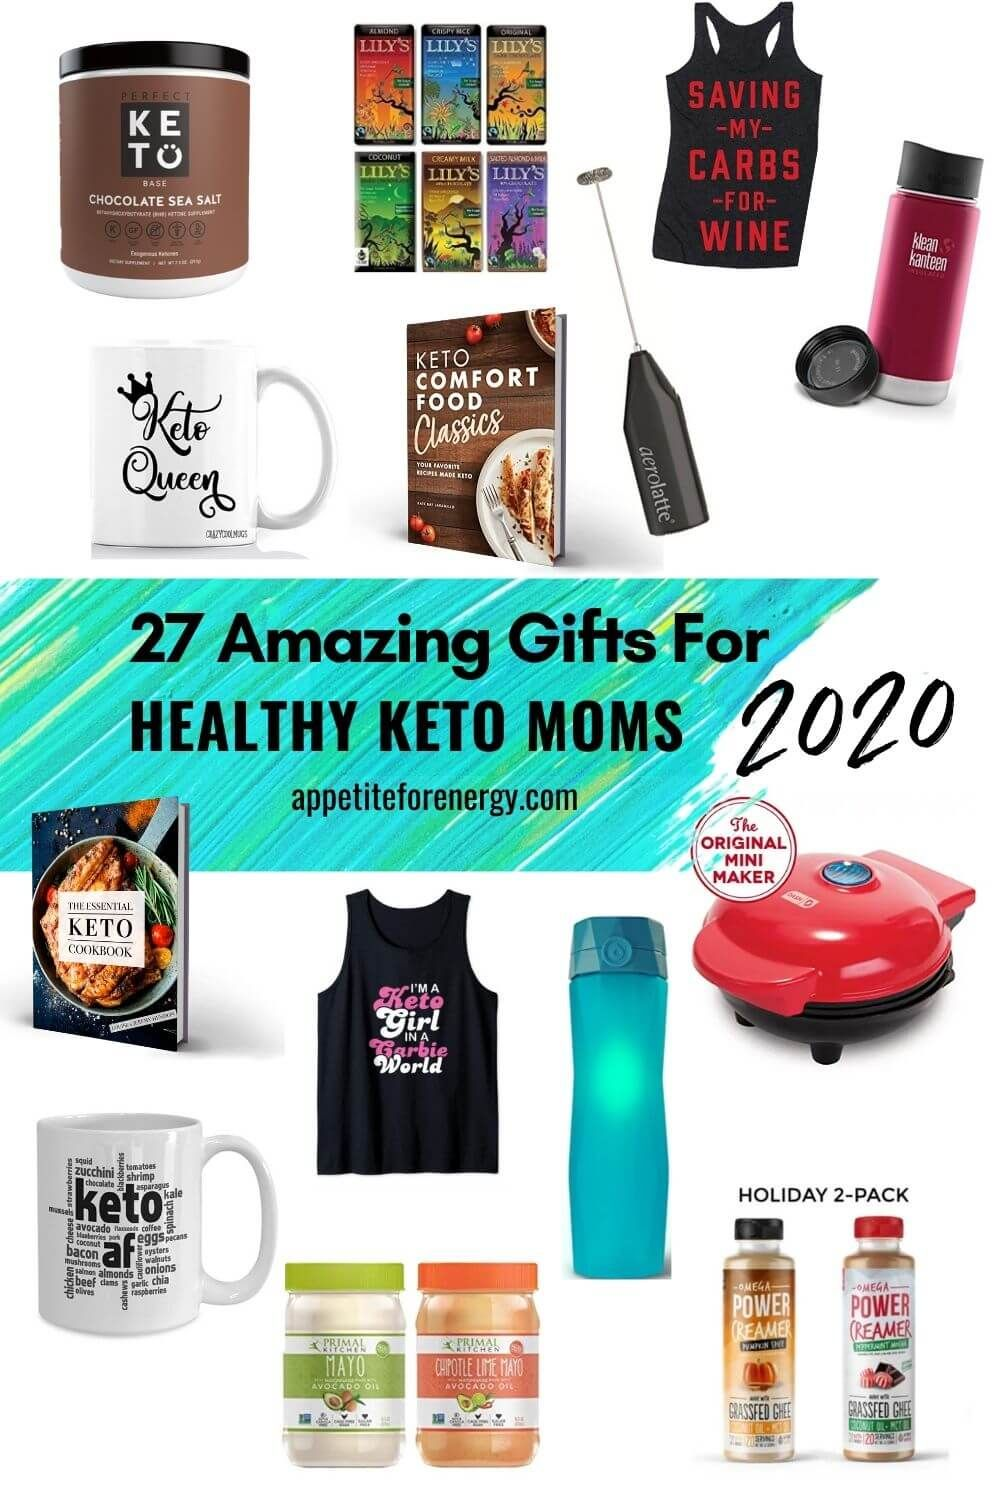 27 Amazing Keto Gifts For Healthy Moms 2020 Appetite For Energy In 2020 Keto Holiday Keto Recipe Book Keto